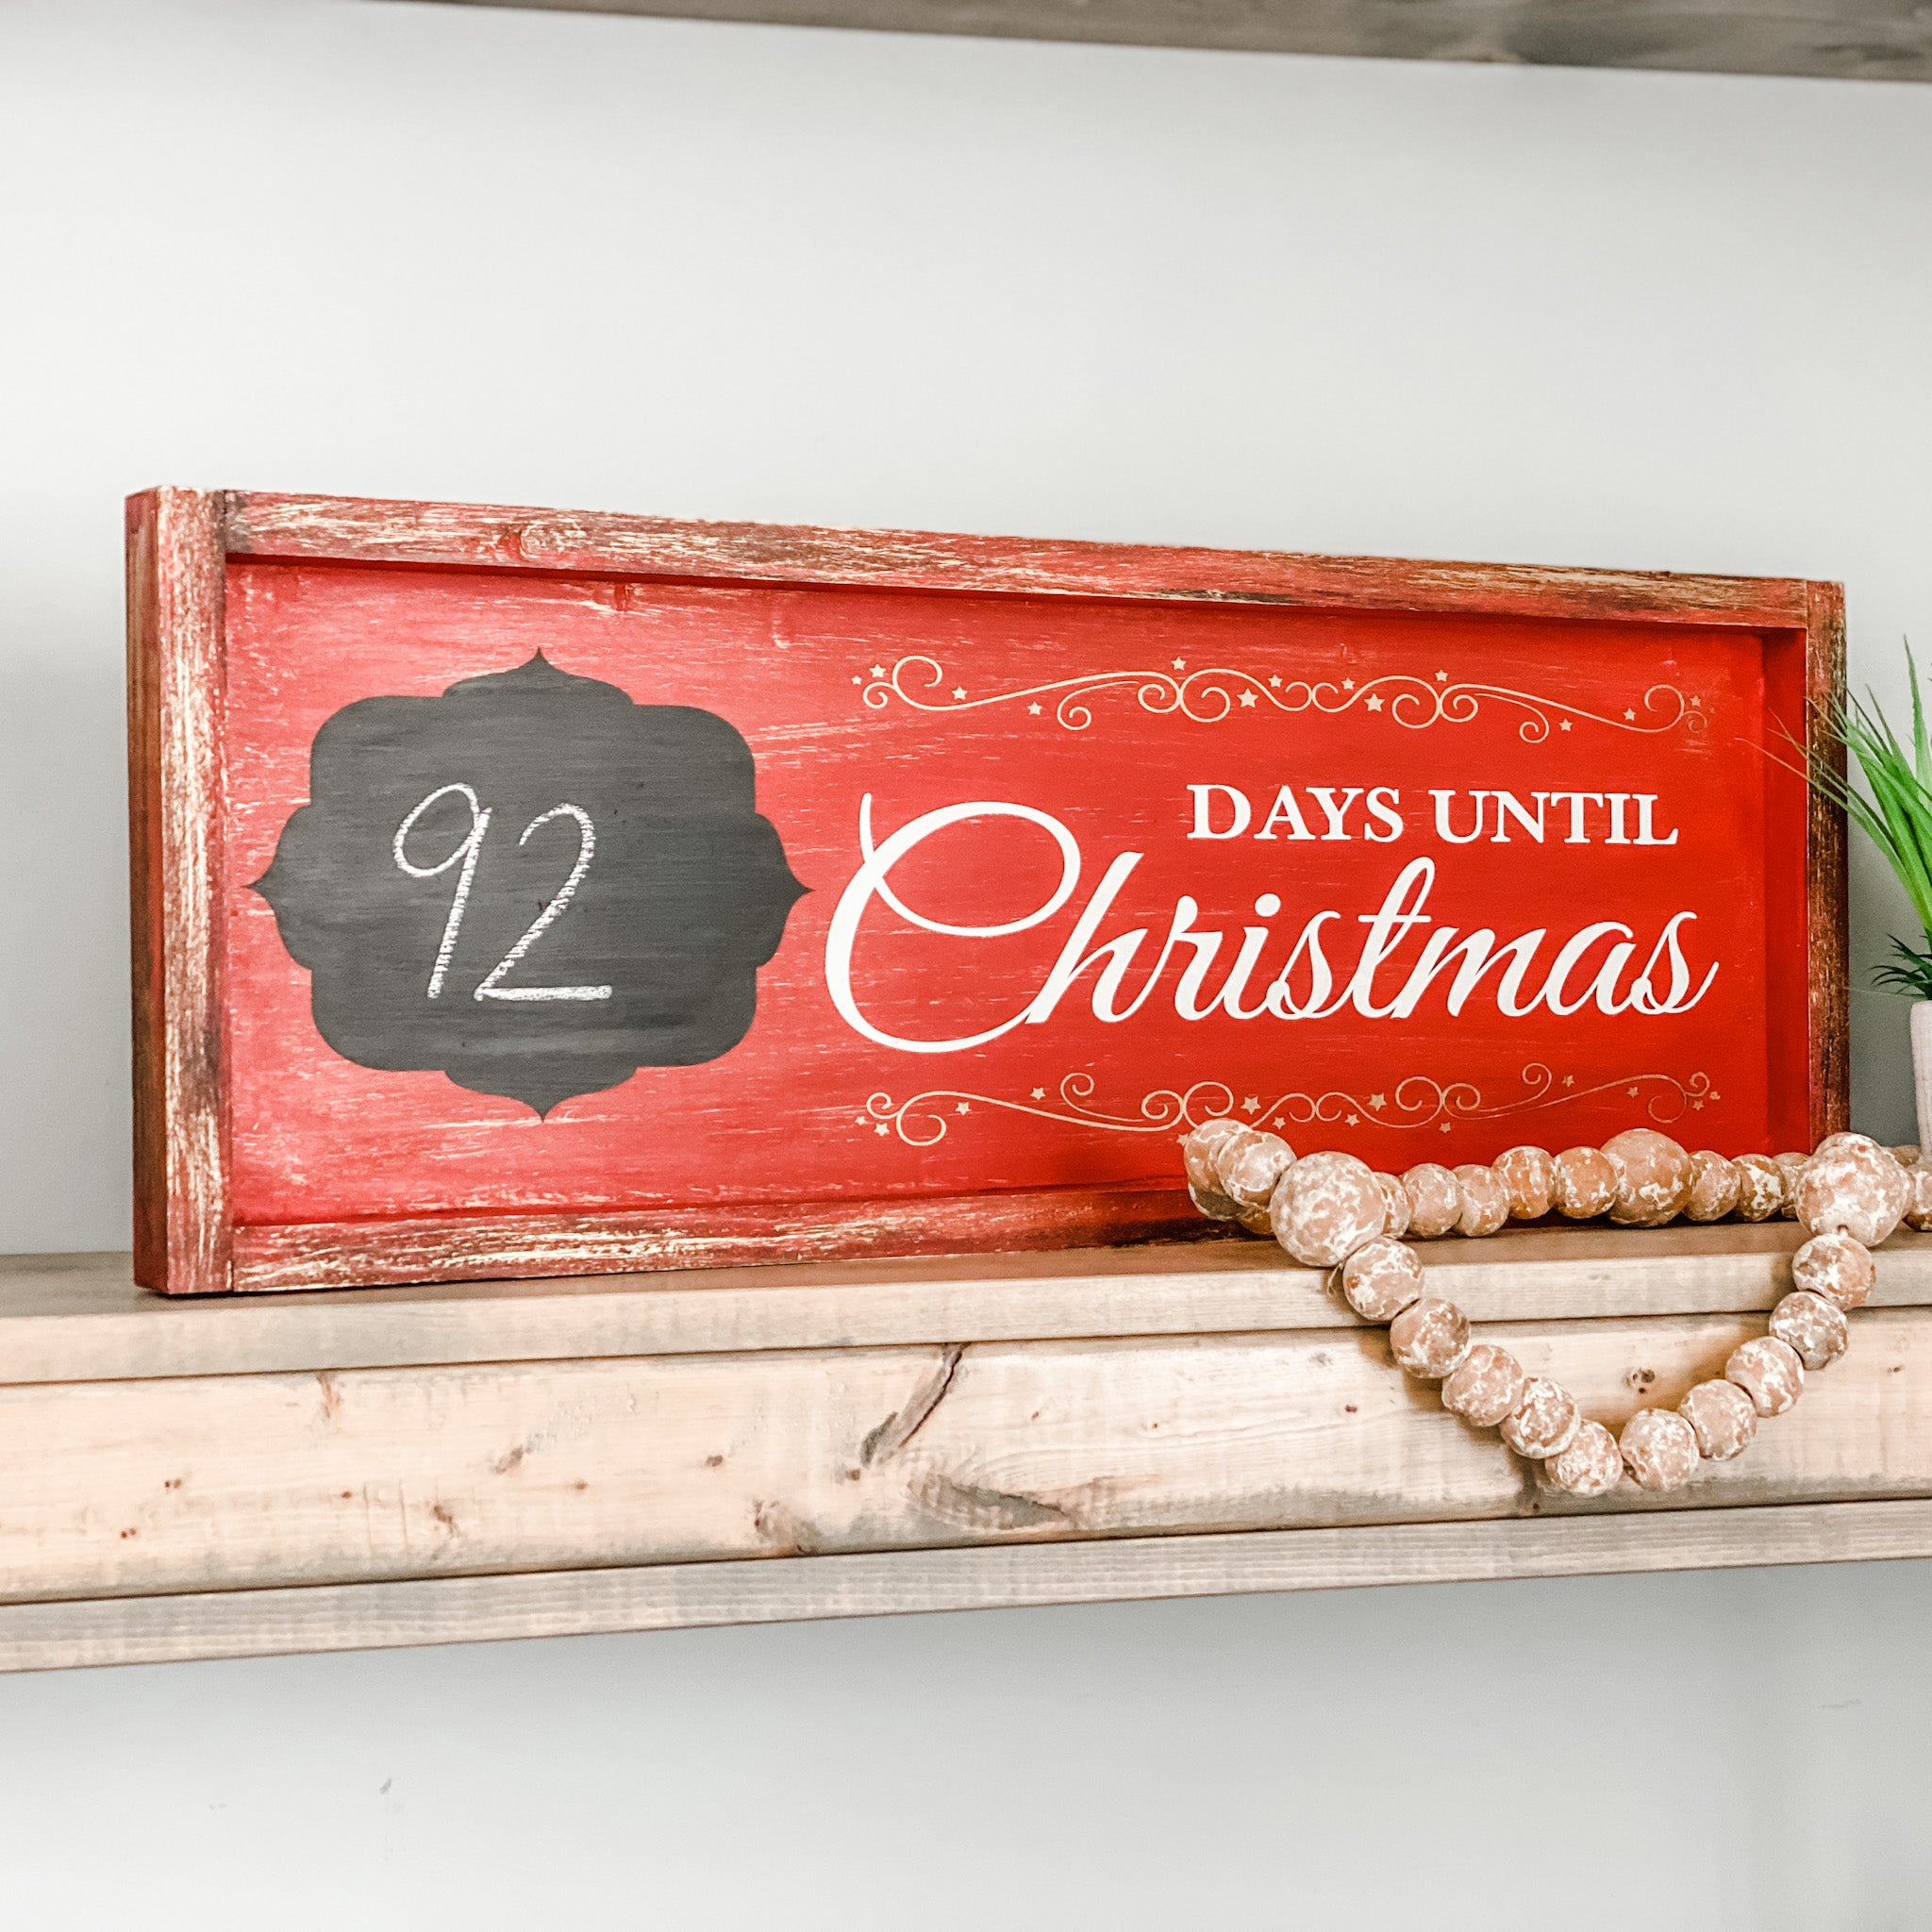 Countdown to Christmas: Plank Design